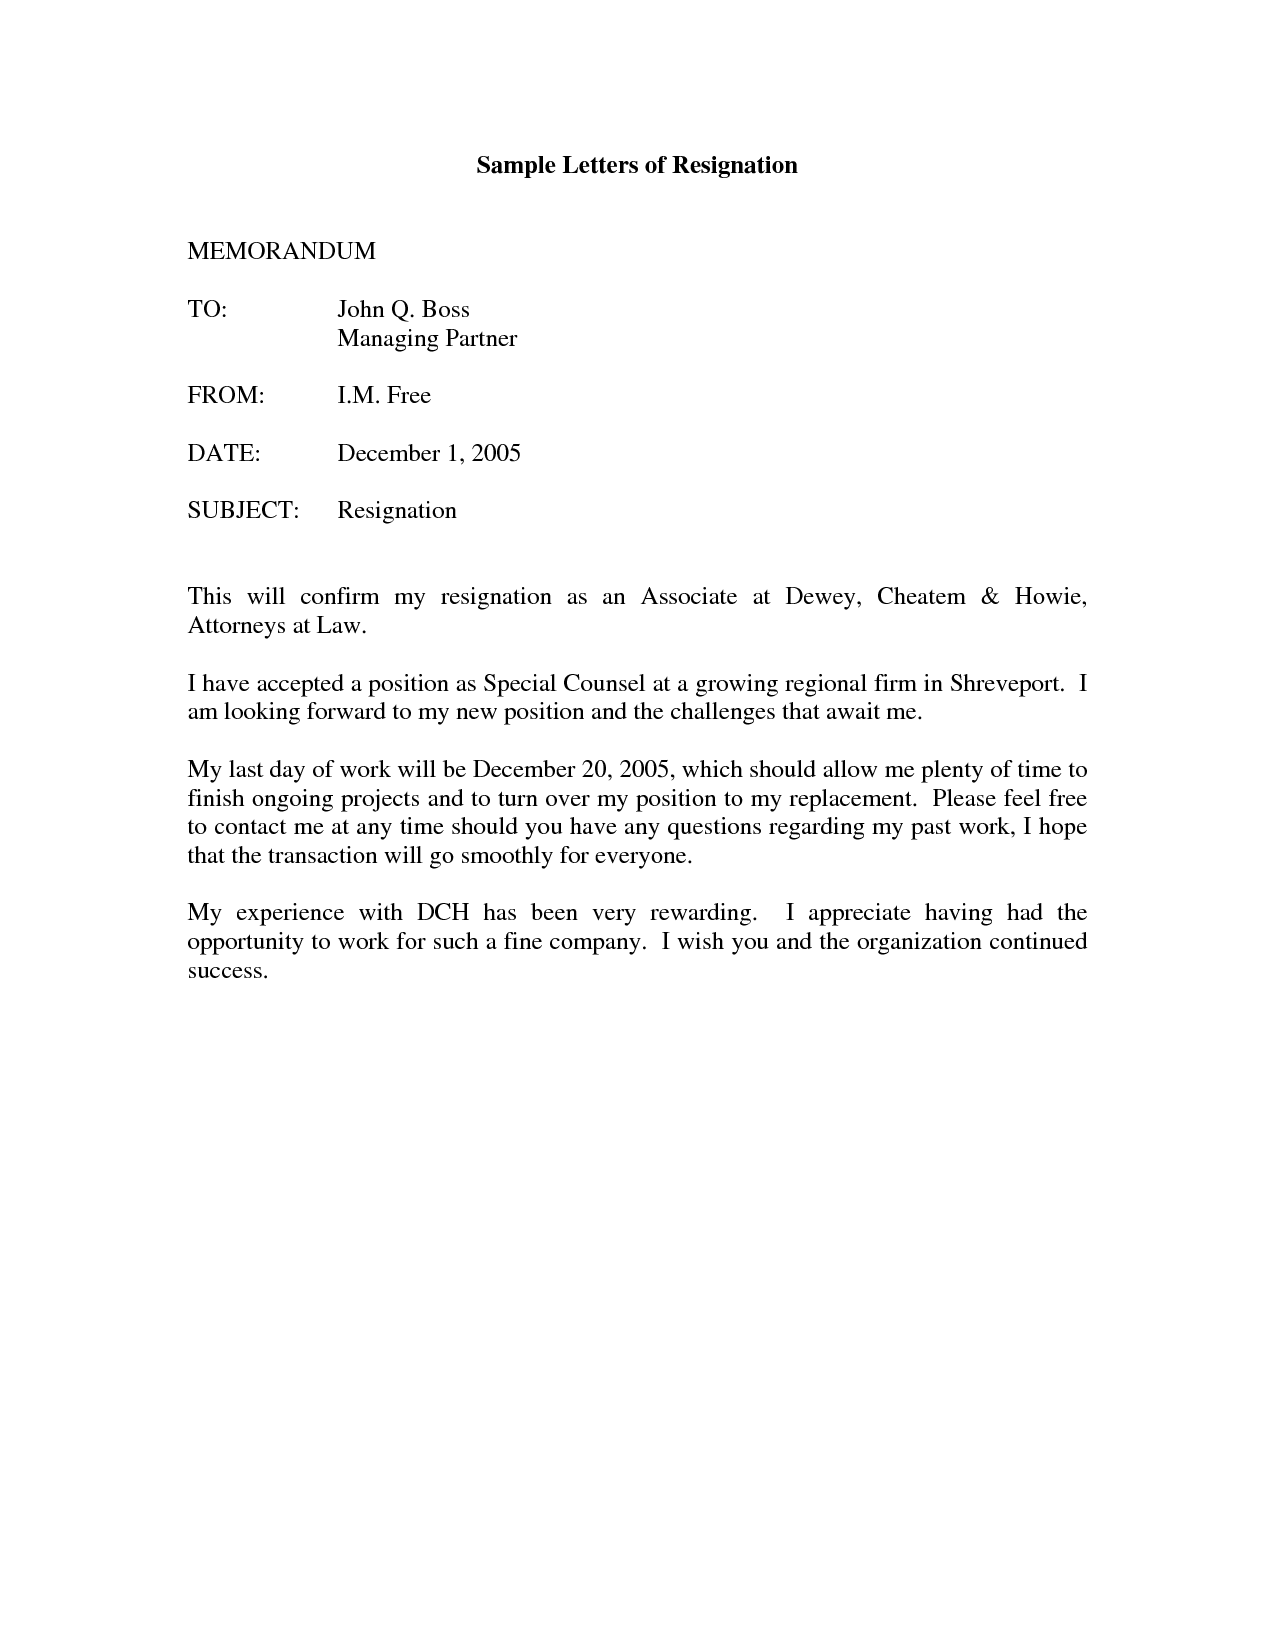 Template Letter Of Resignation From Employment movie ticket – Letter to Resign from a Position